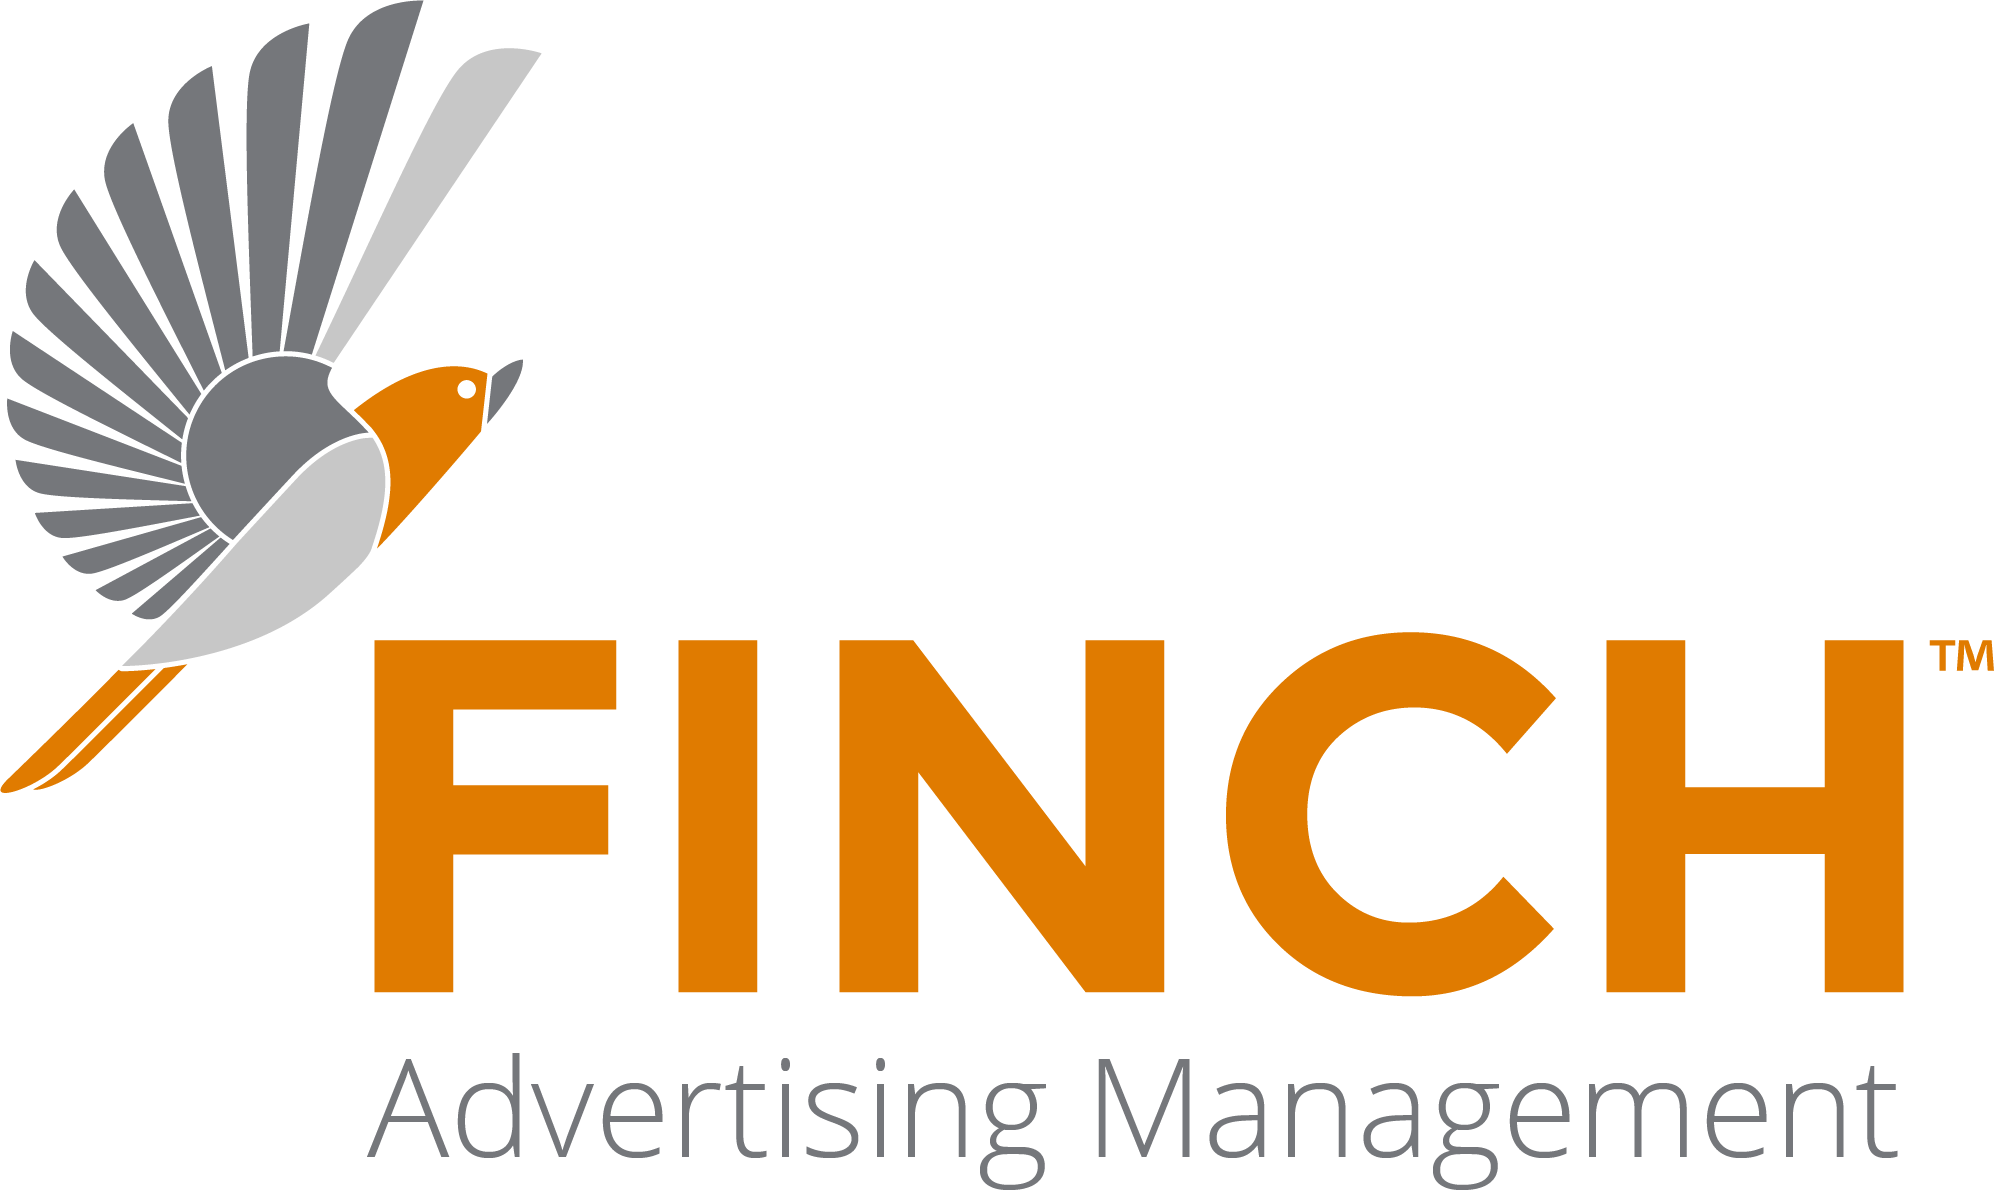 FINCH_logo_2020_primary_advmgmt